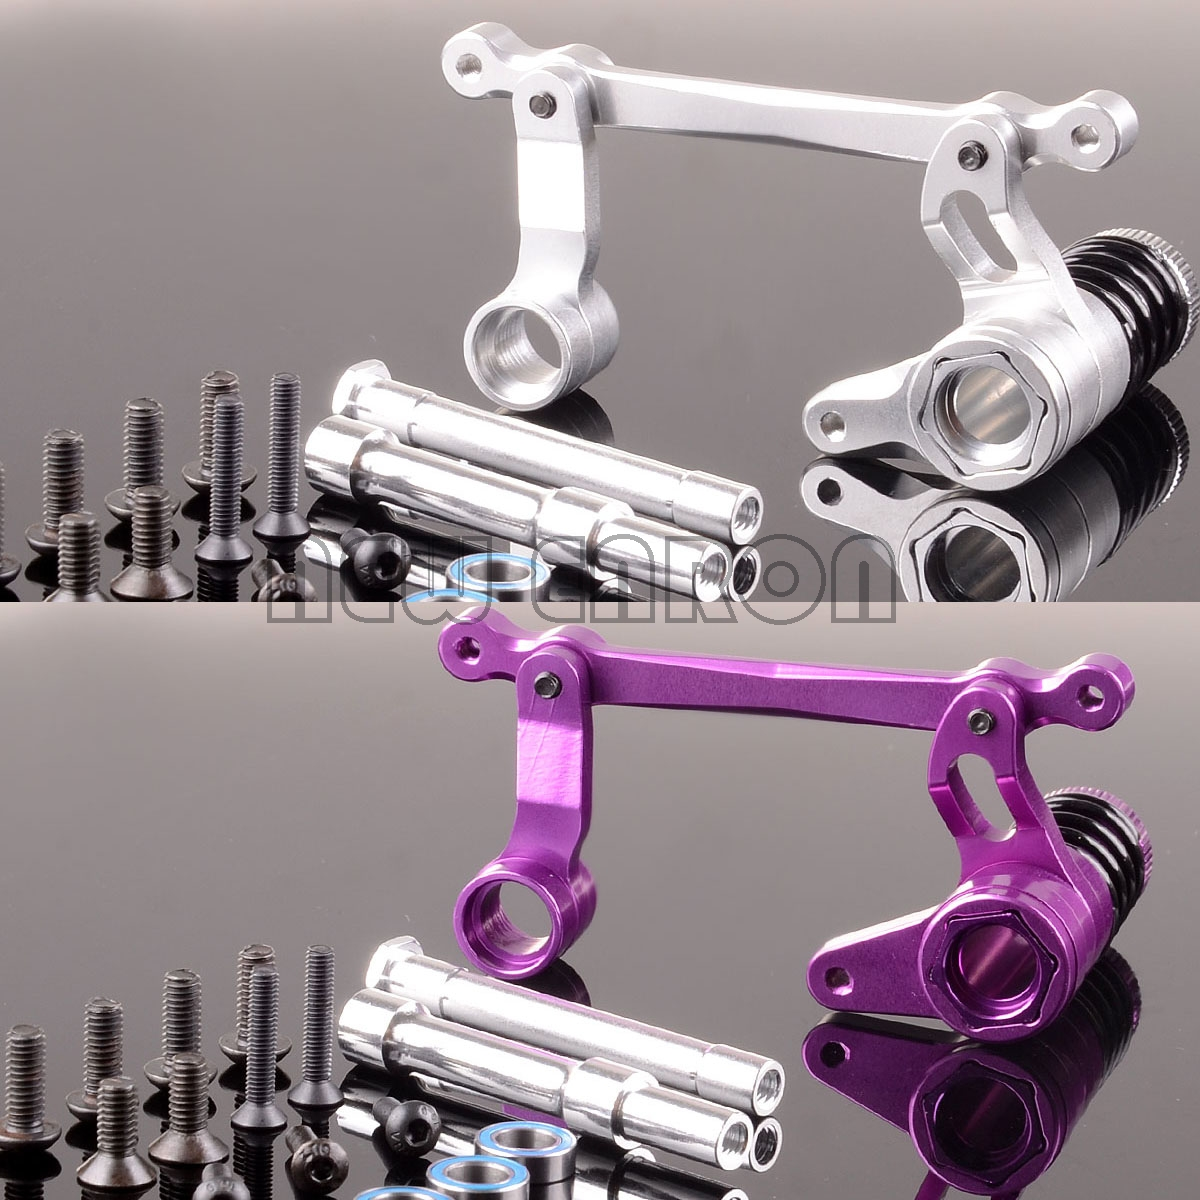 NEW ENRON Aluminum Steering Assembly Replacement 85058 FOR RC HPI Savage Flux XL 4.6 5.9